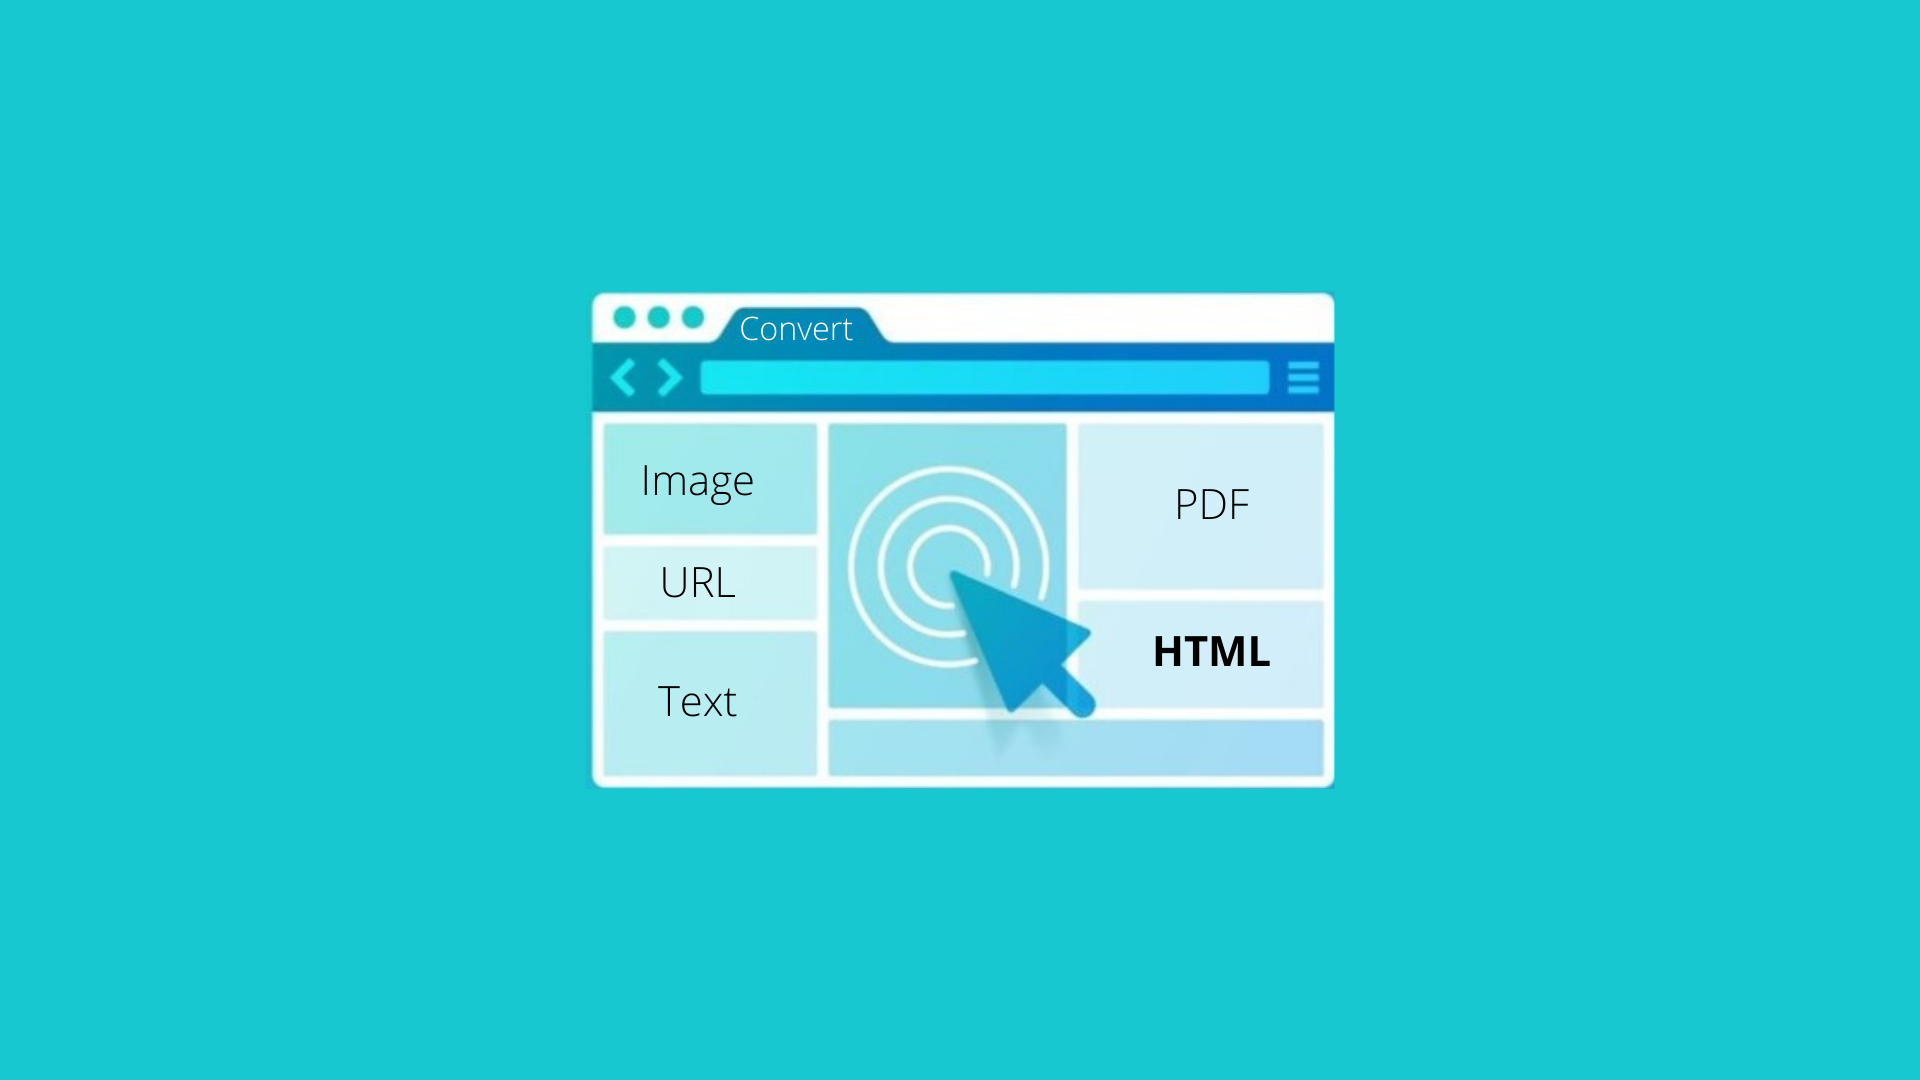 How to Convert an Image to HTML